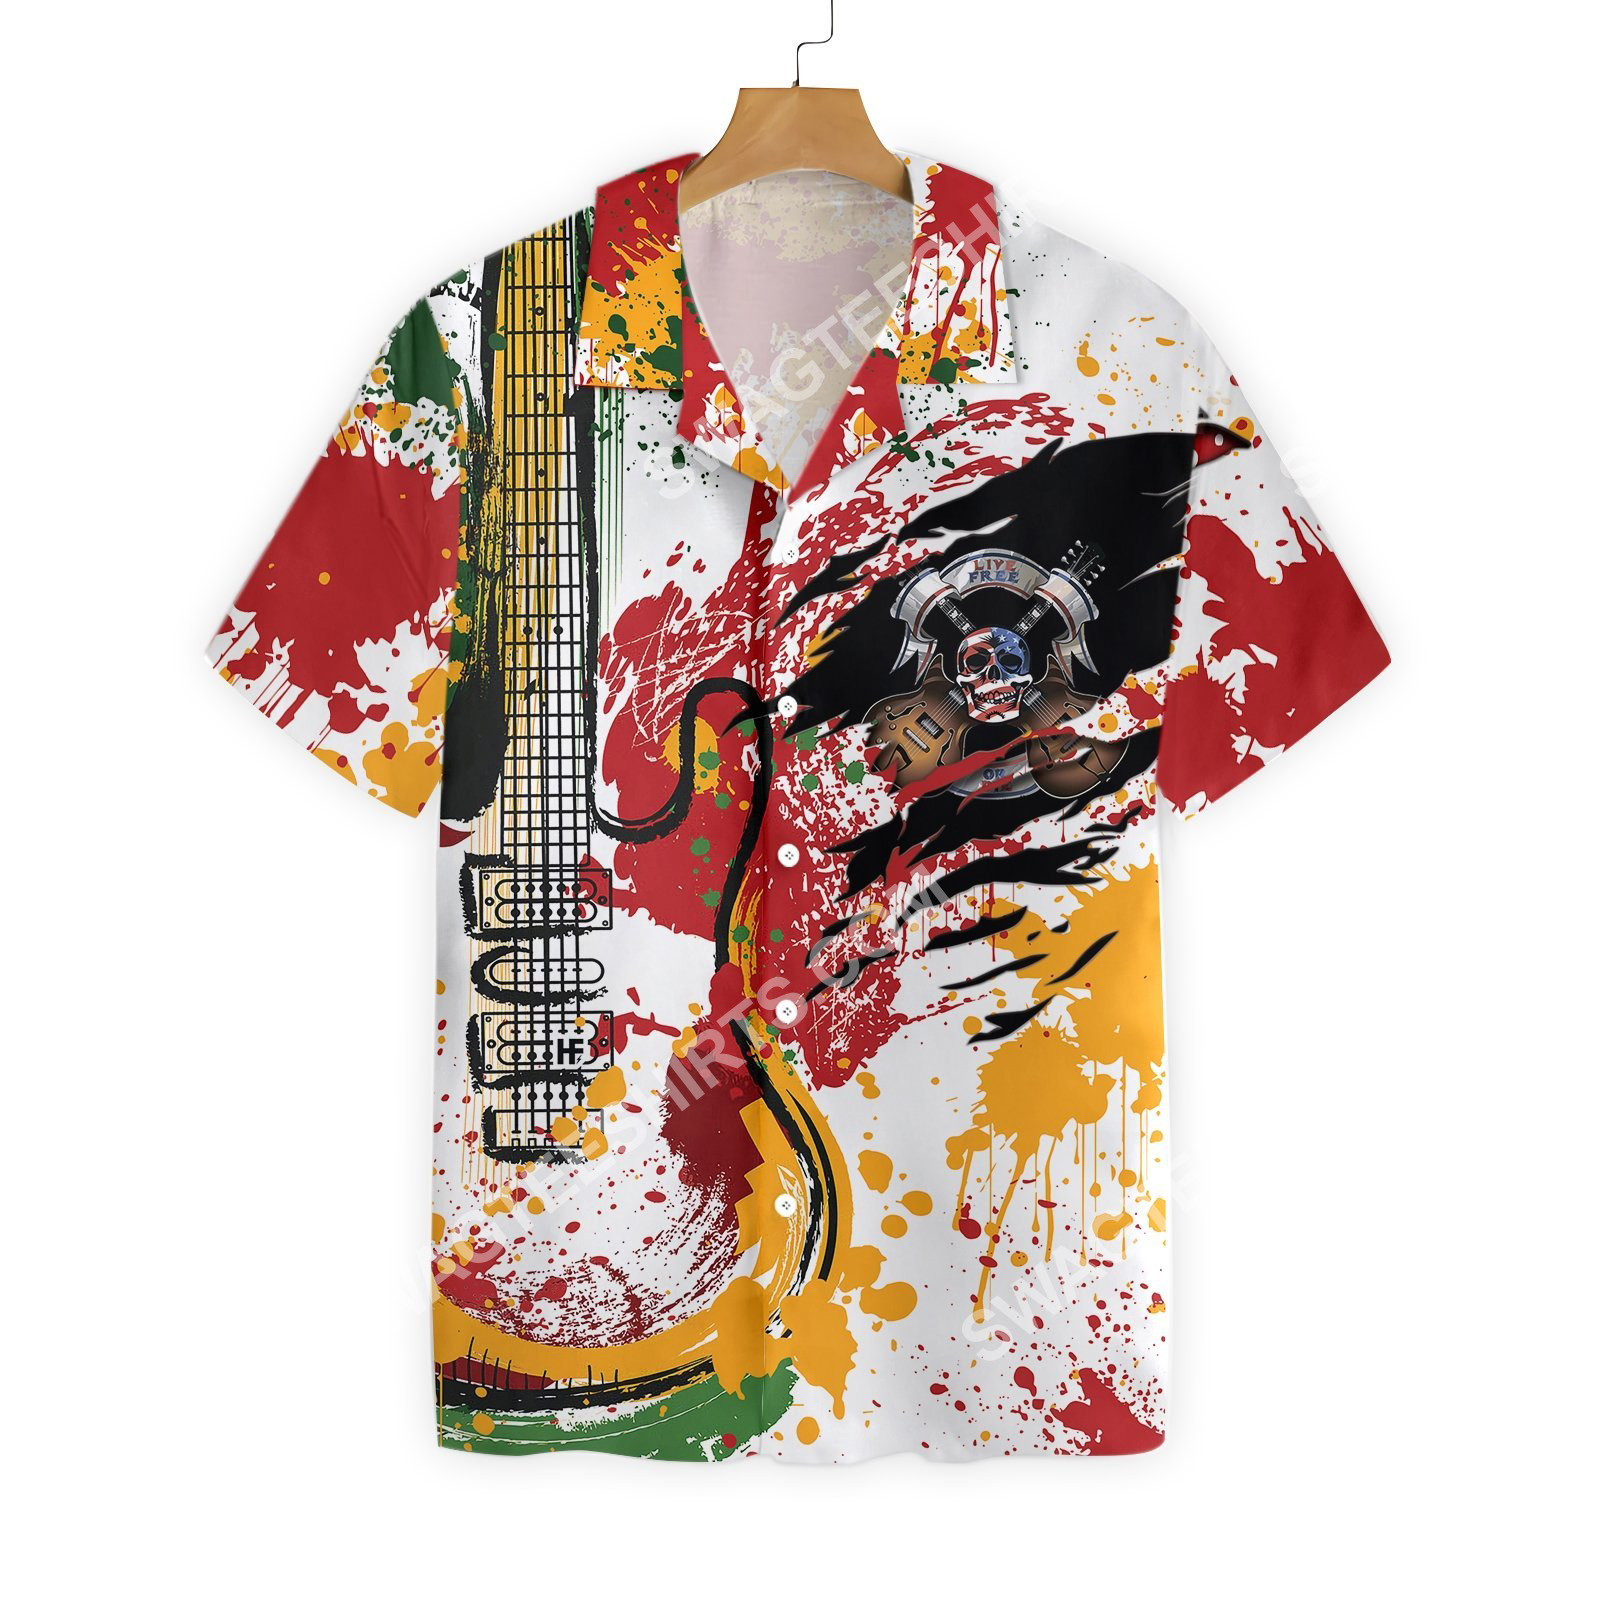 guitar live free or die all over printed hawaiian shirt 3(1)